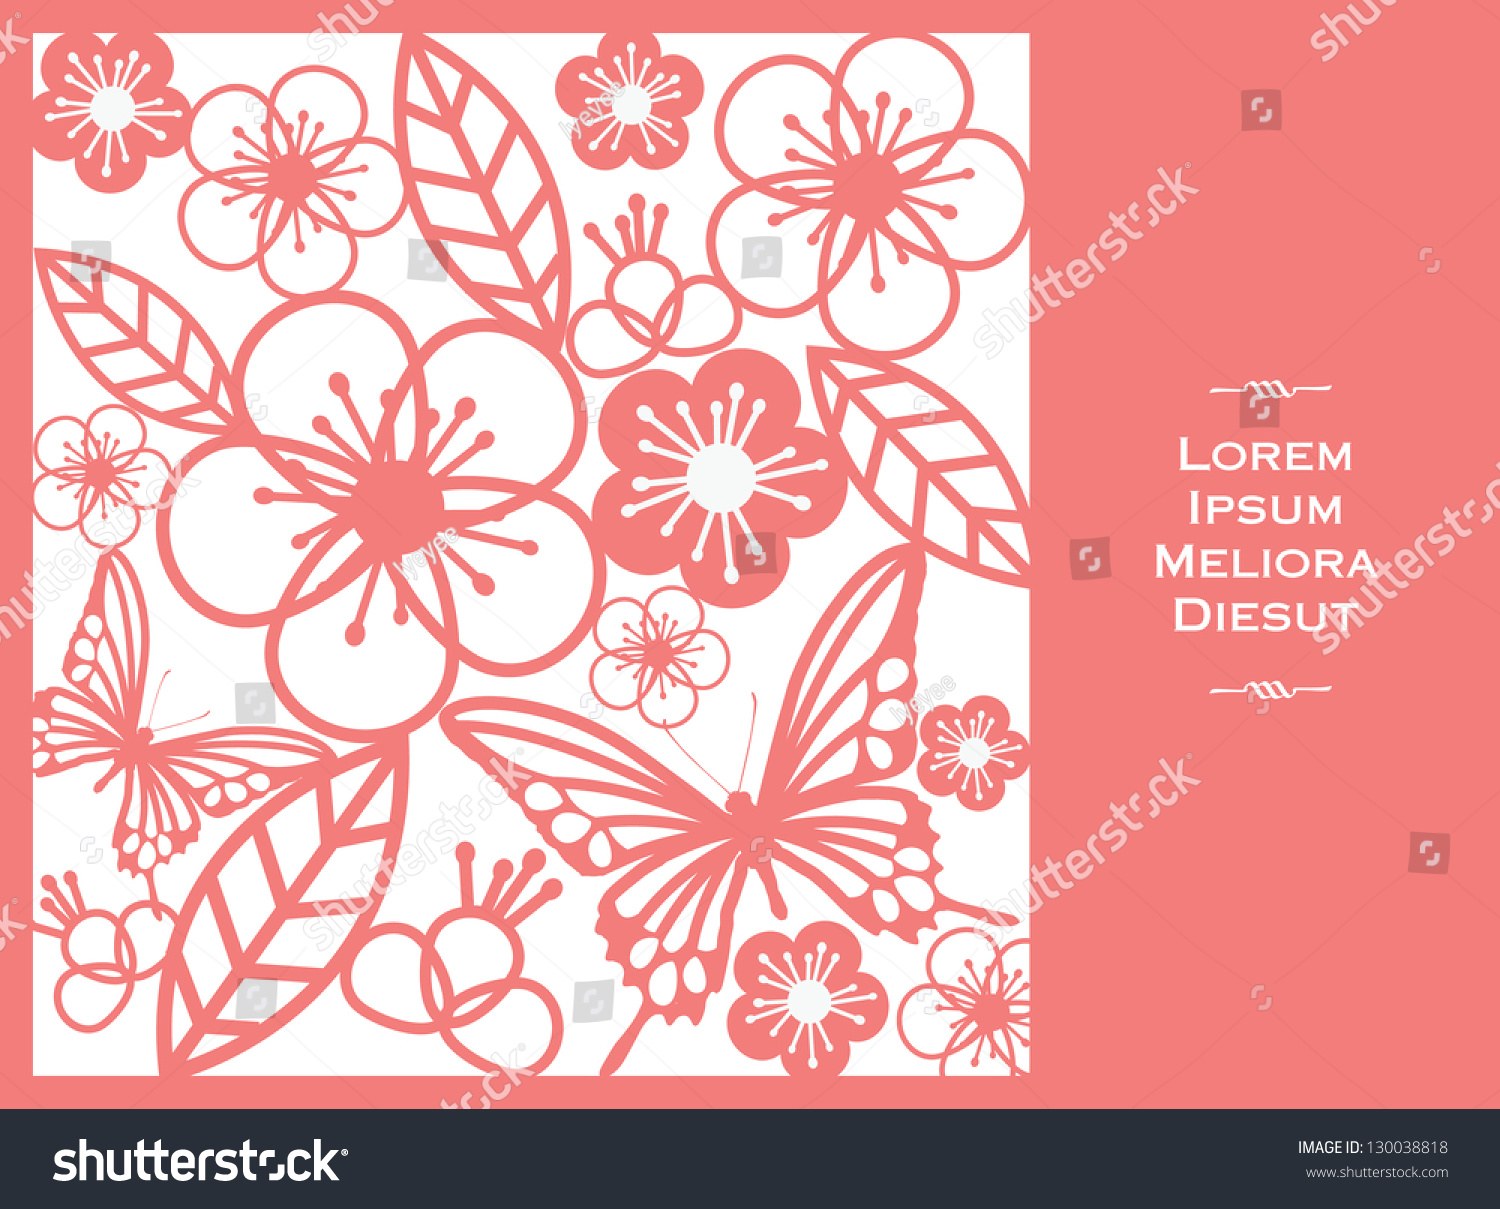 Vintage Chinese Paper Cutting Template Vectorillustration Stock ...